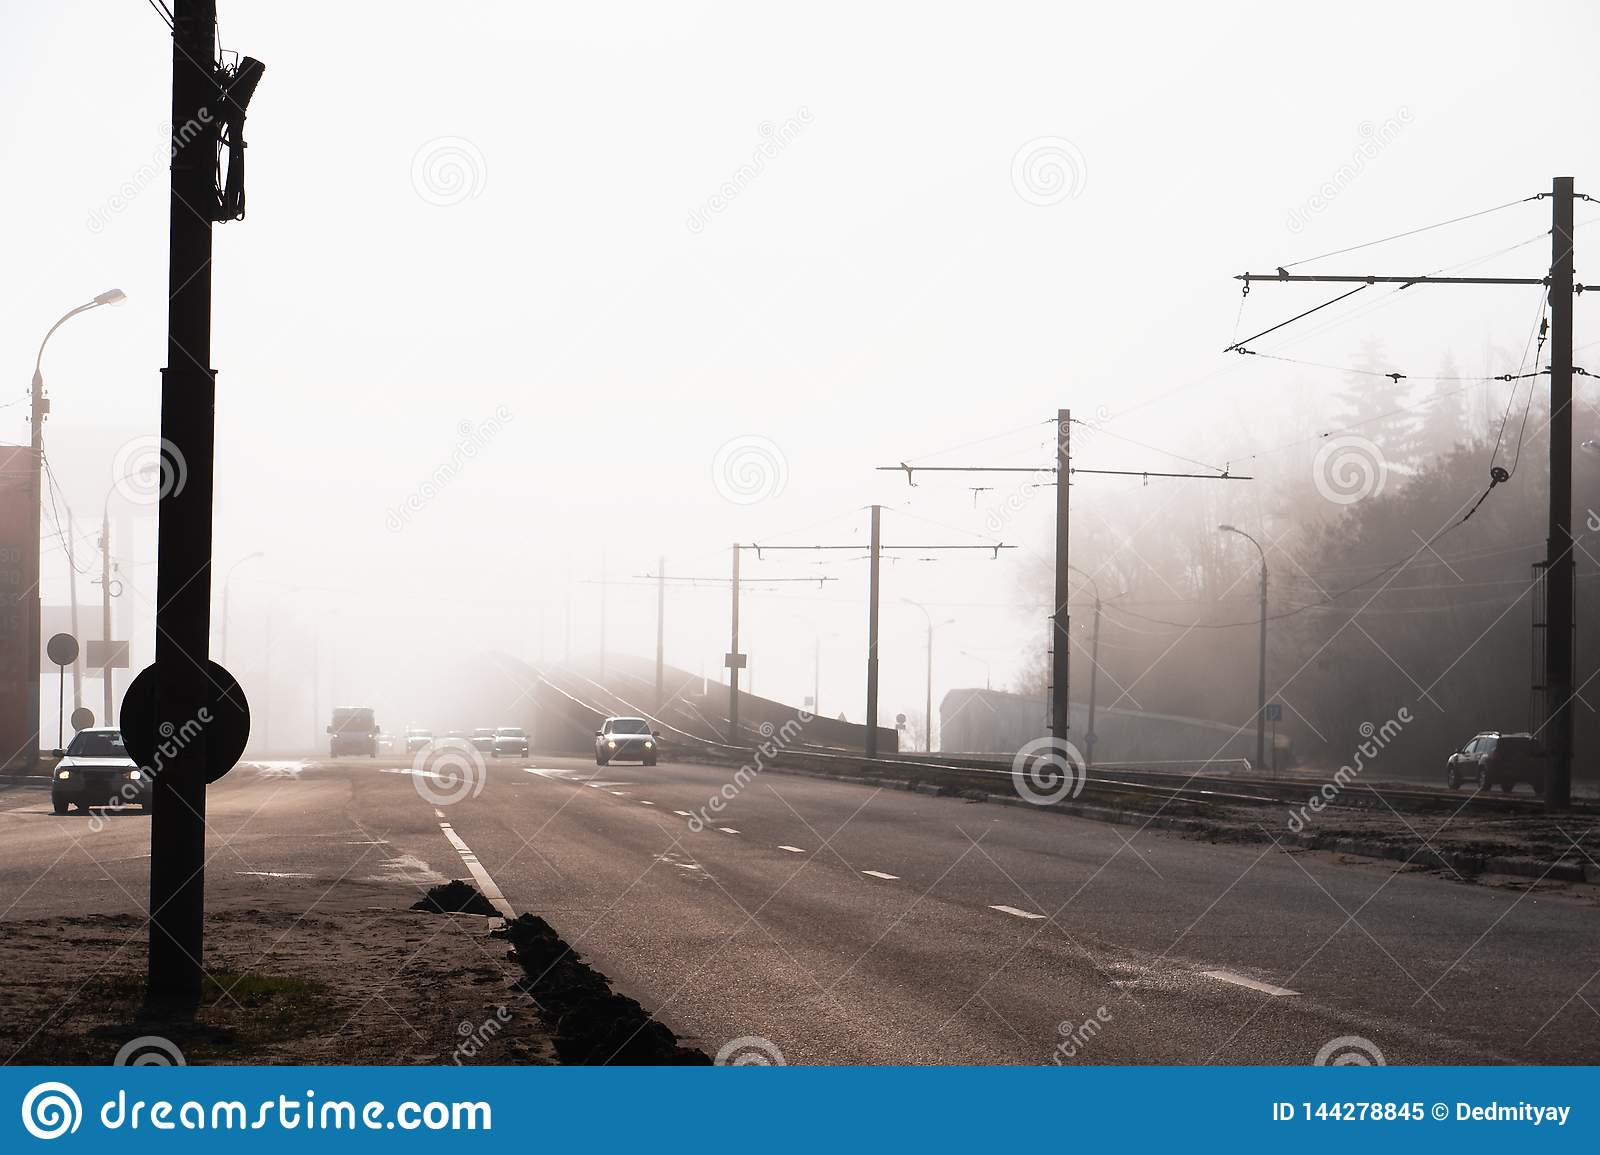 City road or street with car traffic in morning spring fog or haze, atmospheric urban photo